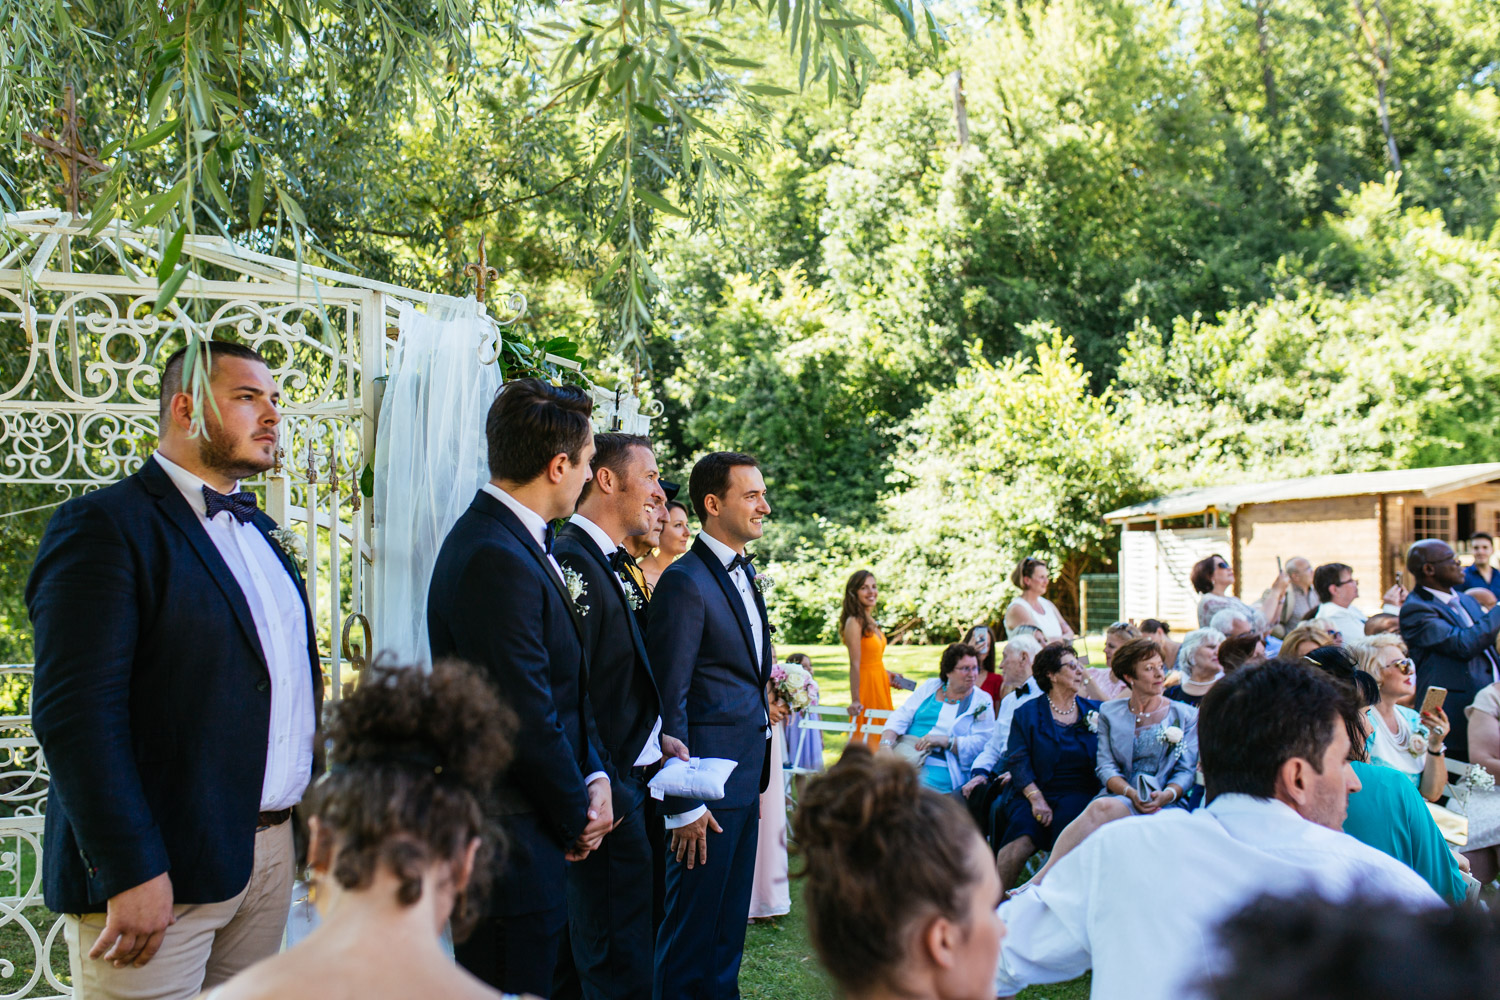 Laure-and-Mark-Wedding-Highlights-56.jpg